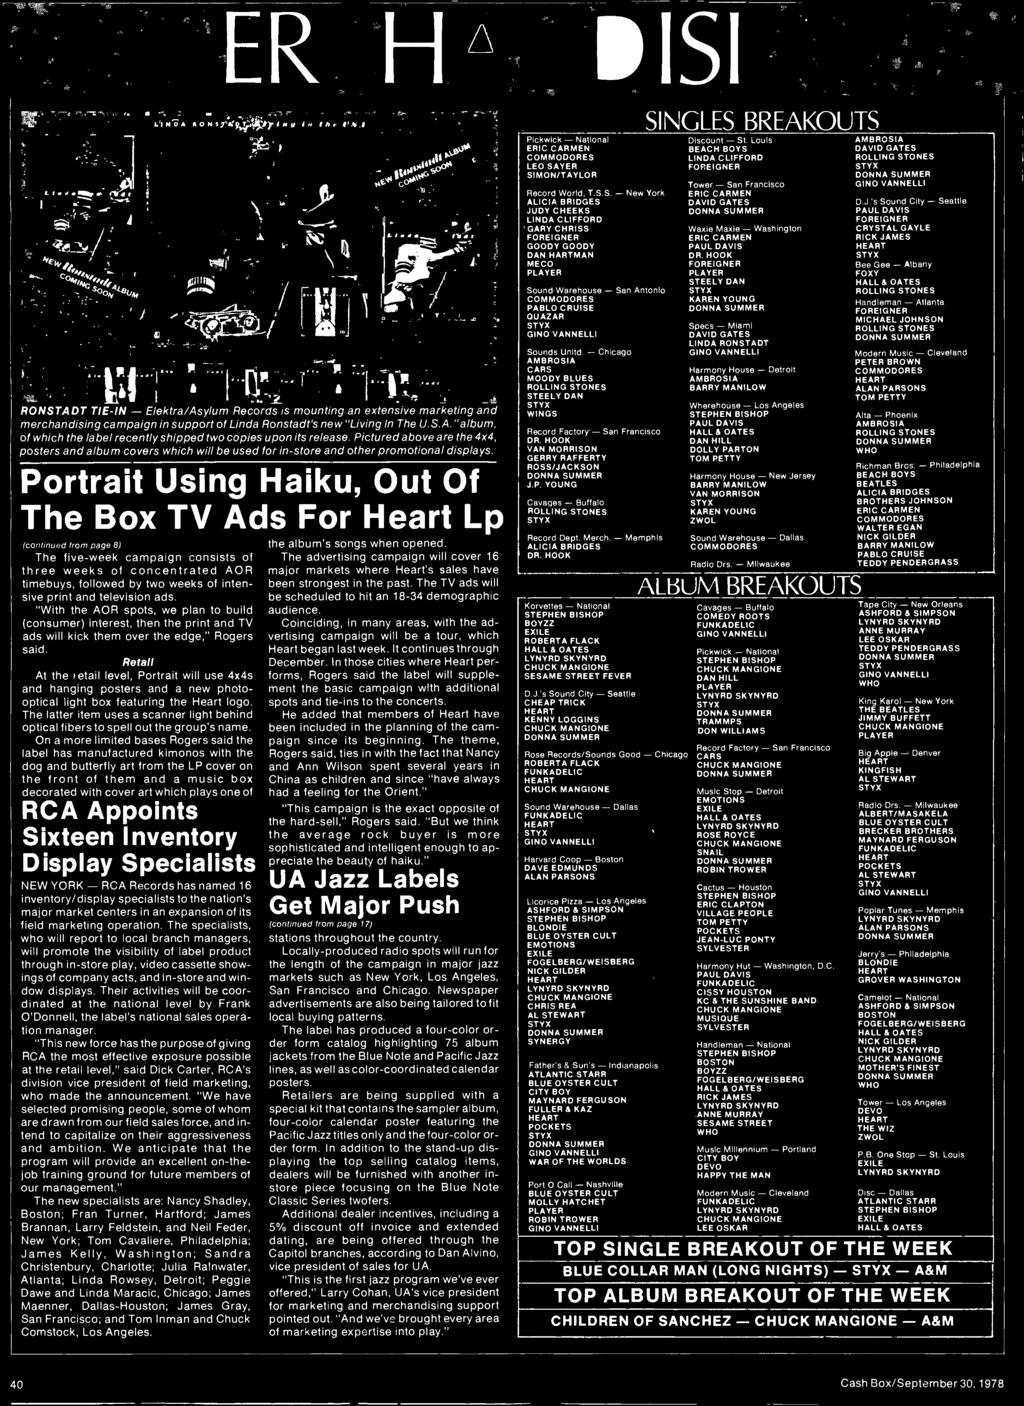 Portrait Using Haiku, Out Of The Box TV Ads For Heart Lp /continued from page 81 The five -week campaign consists of three weeks of concentrated AOR timebuys, followed by two weeks of intensive print